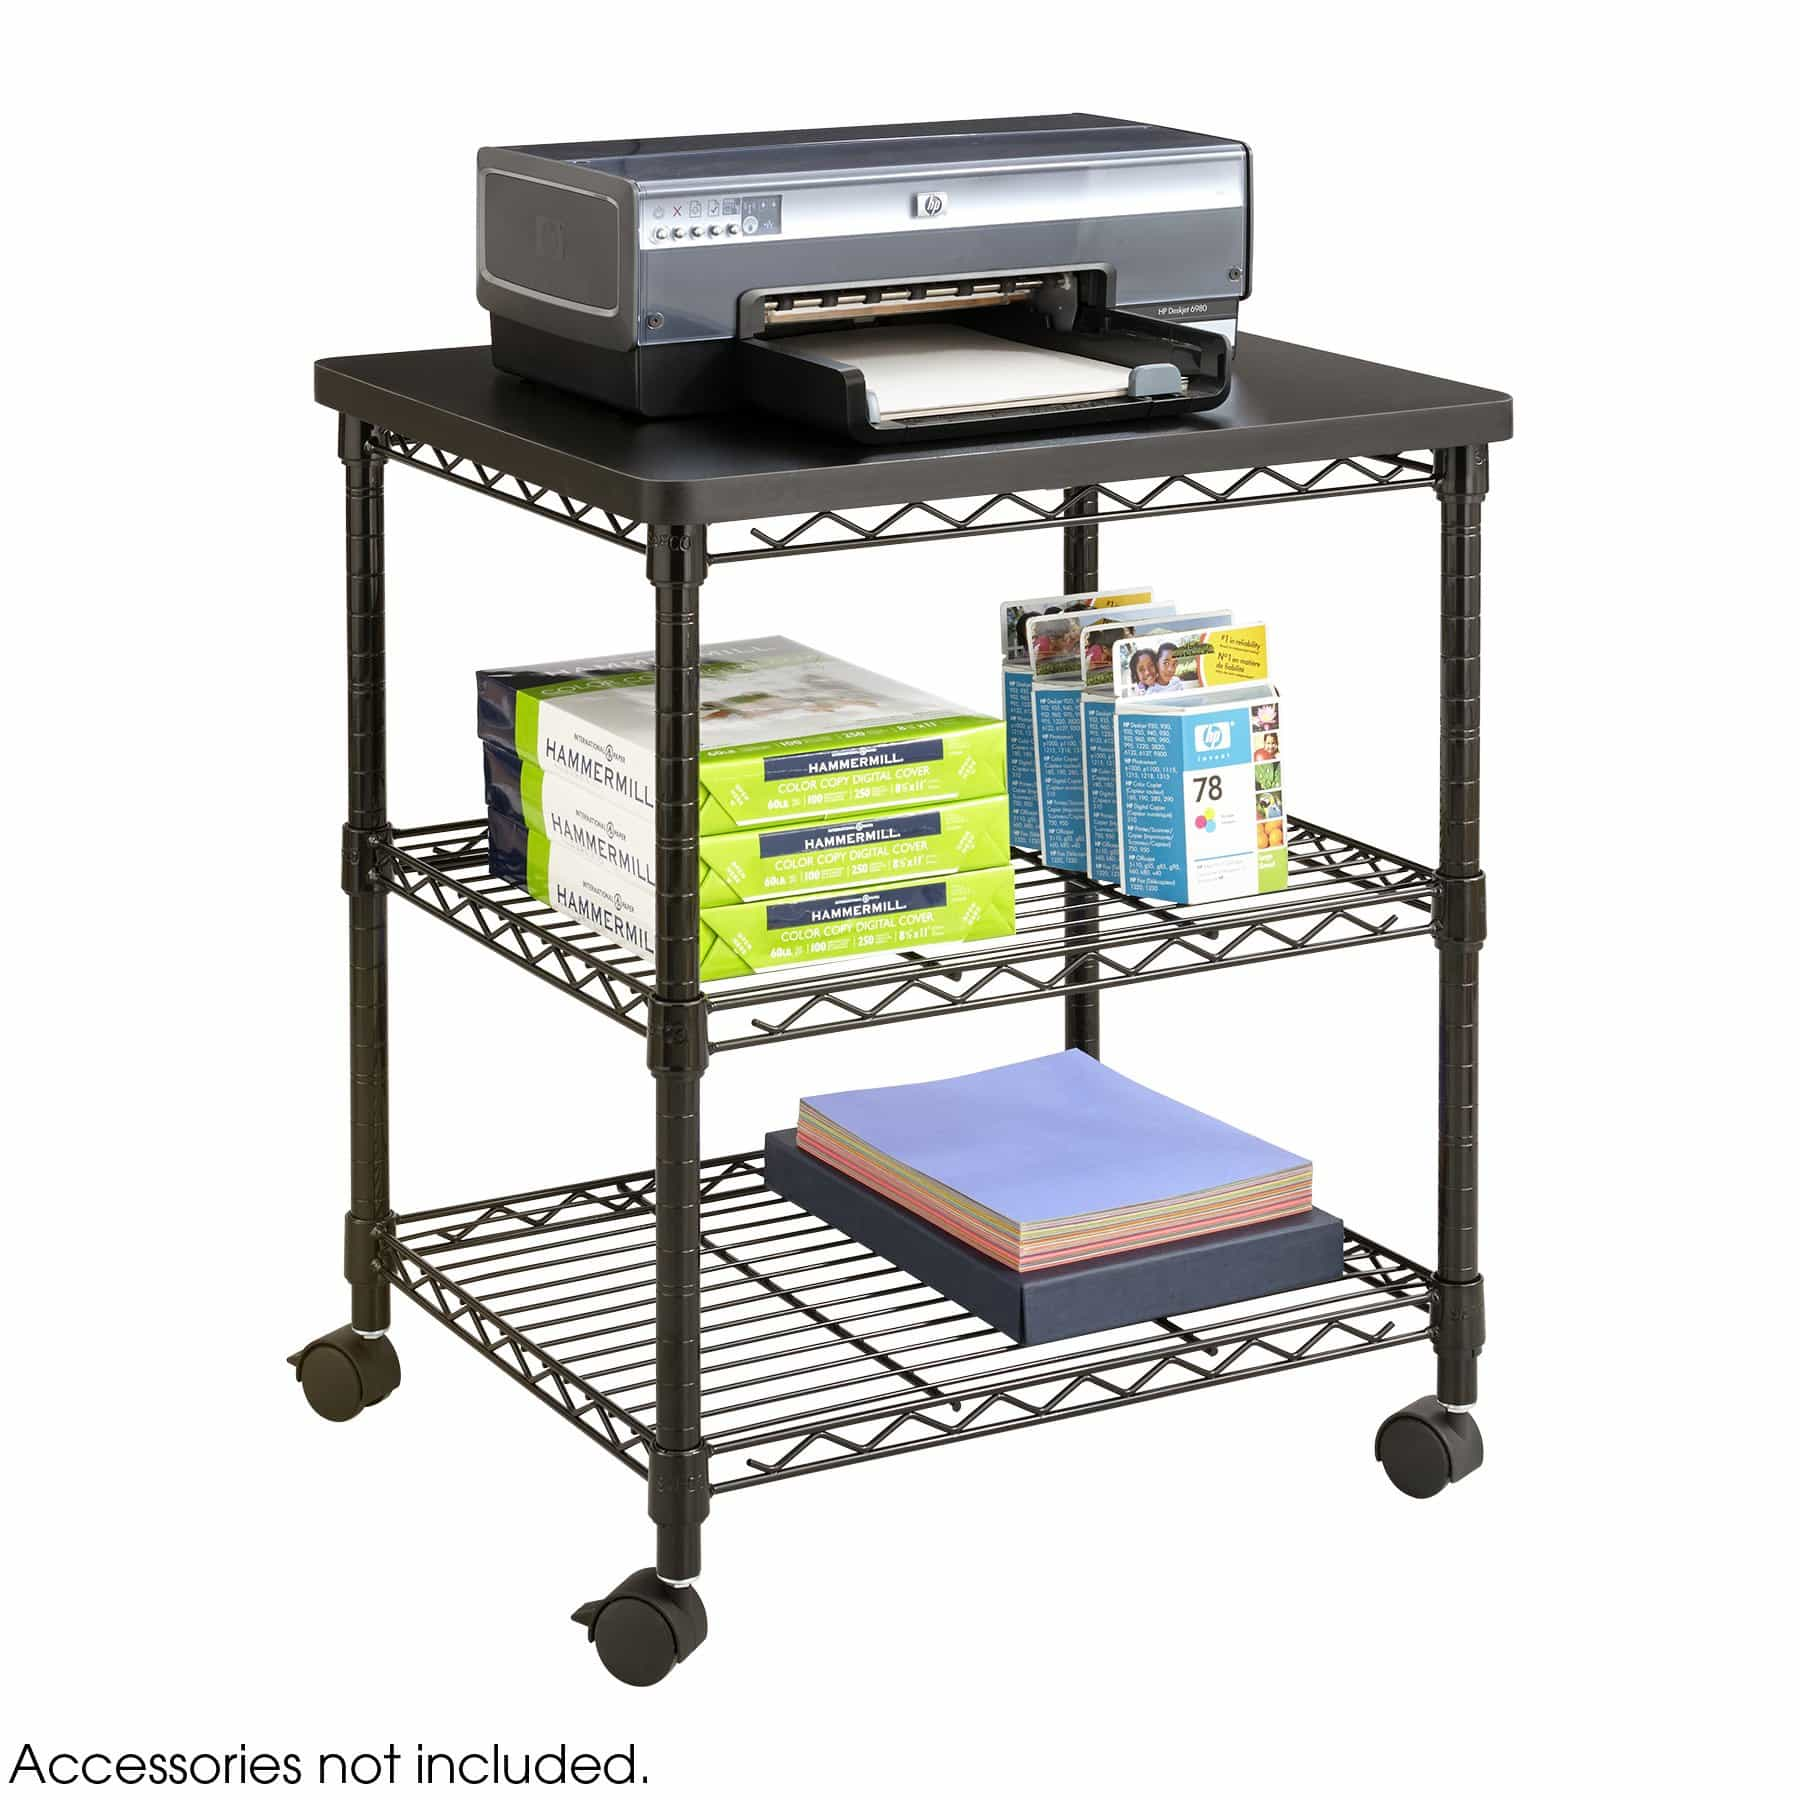 bedinhome - 5207BL Office Furniture mobile printer steel cart  Black Desk side Wire Machine Stand - Safco - Wire Stands